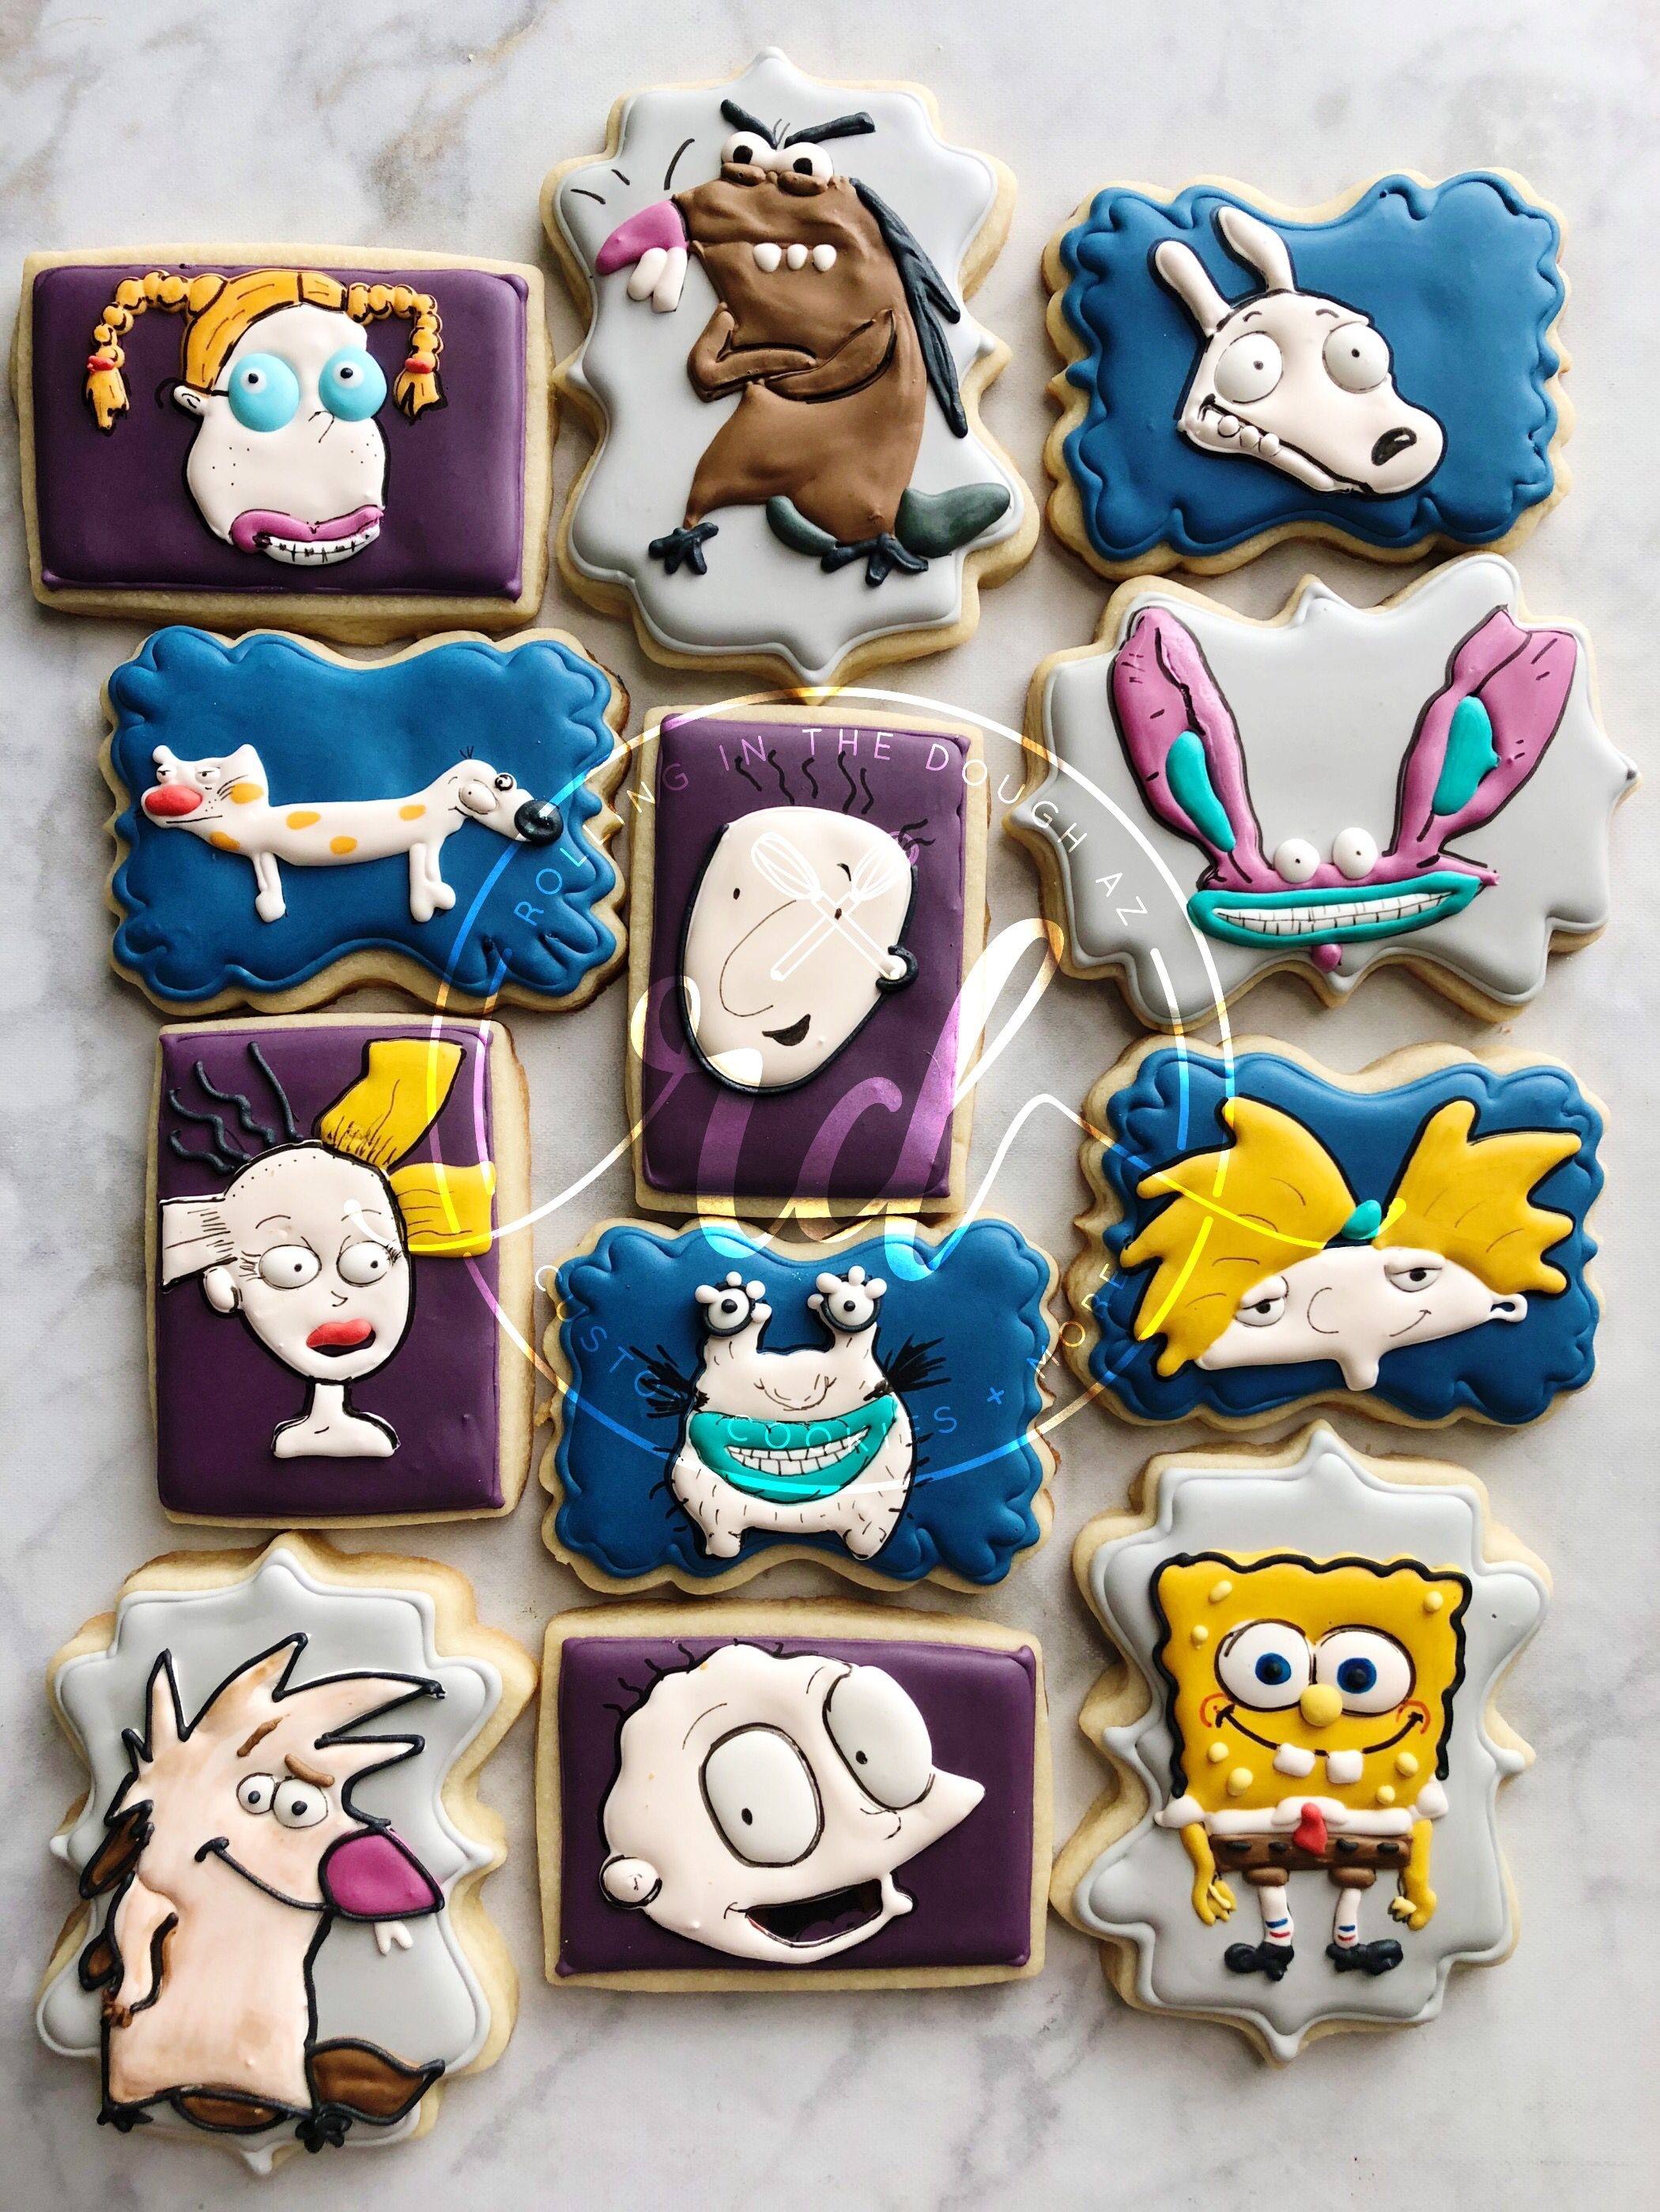 90s Nickelodeon Cookies Nickelodeon 90s Nickelodeon Photo And Video